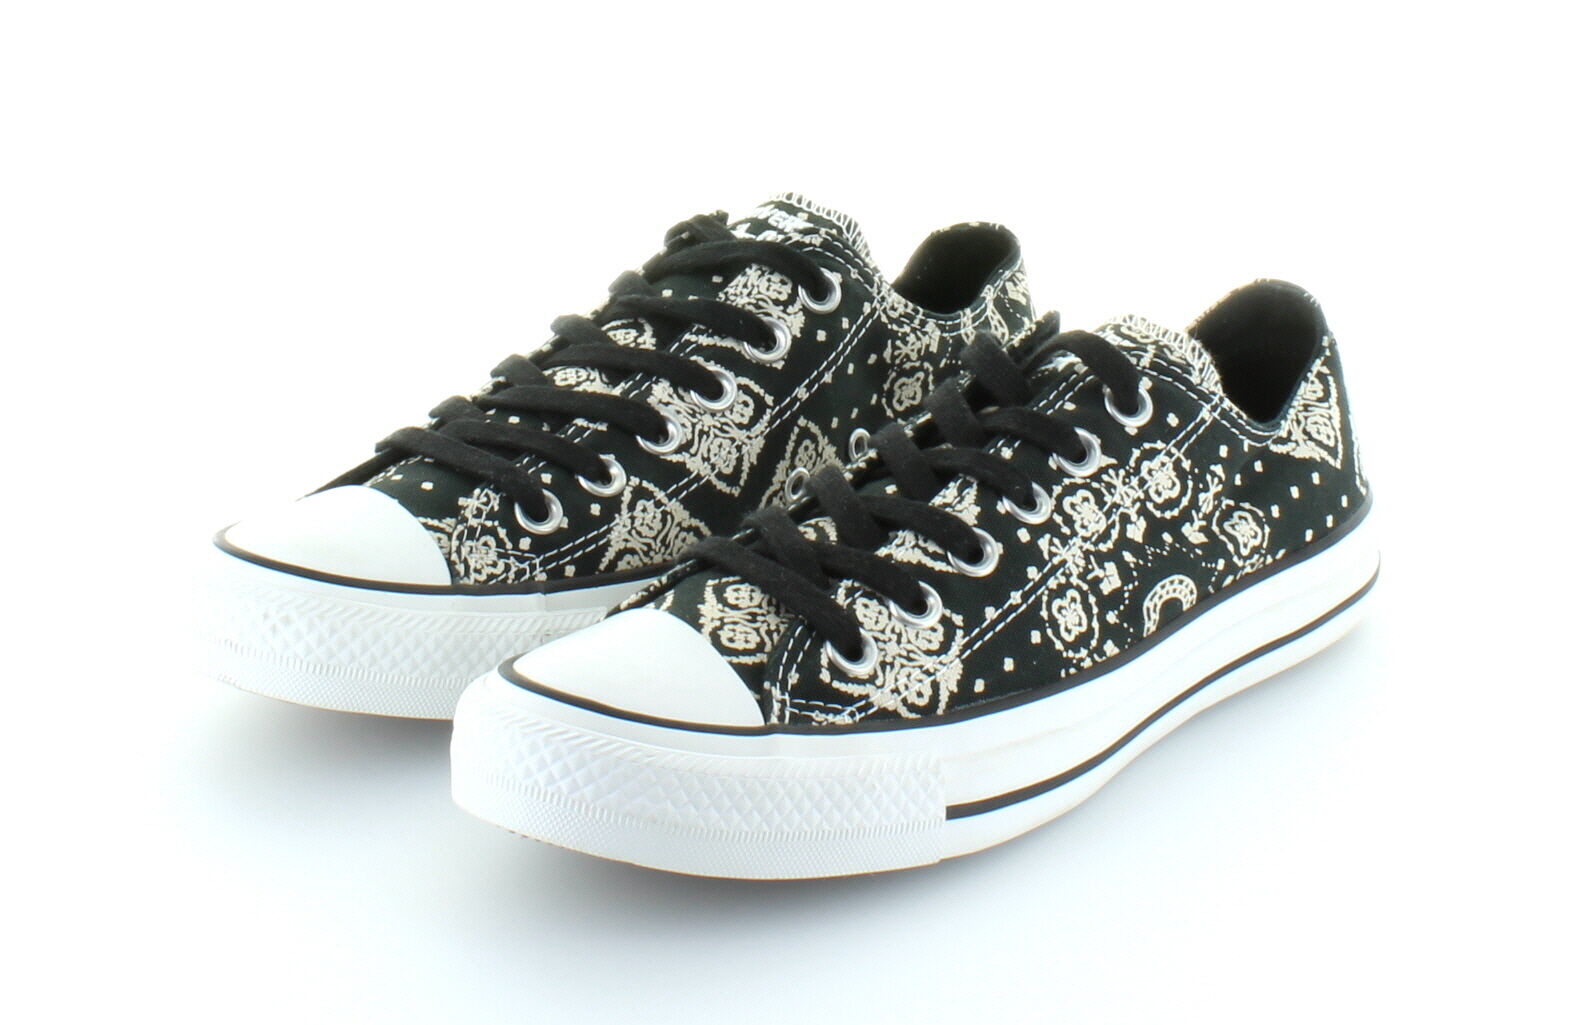 Converse All Star Chuck Taylor Ox bandana Print Black /38,5